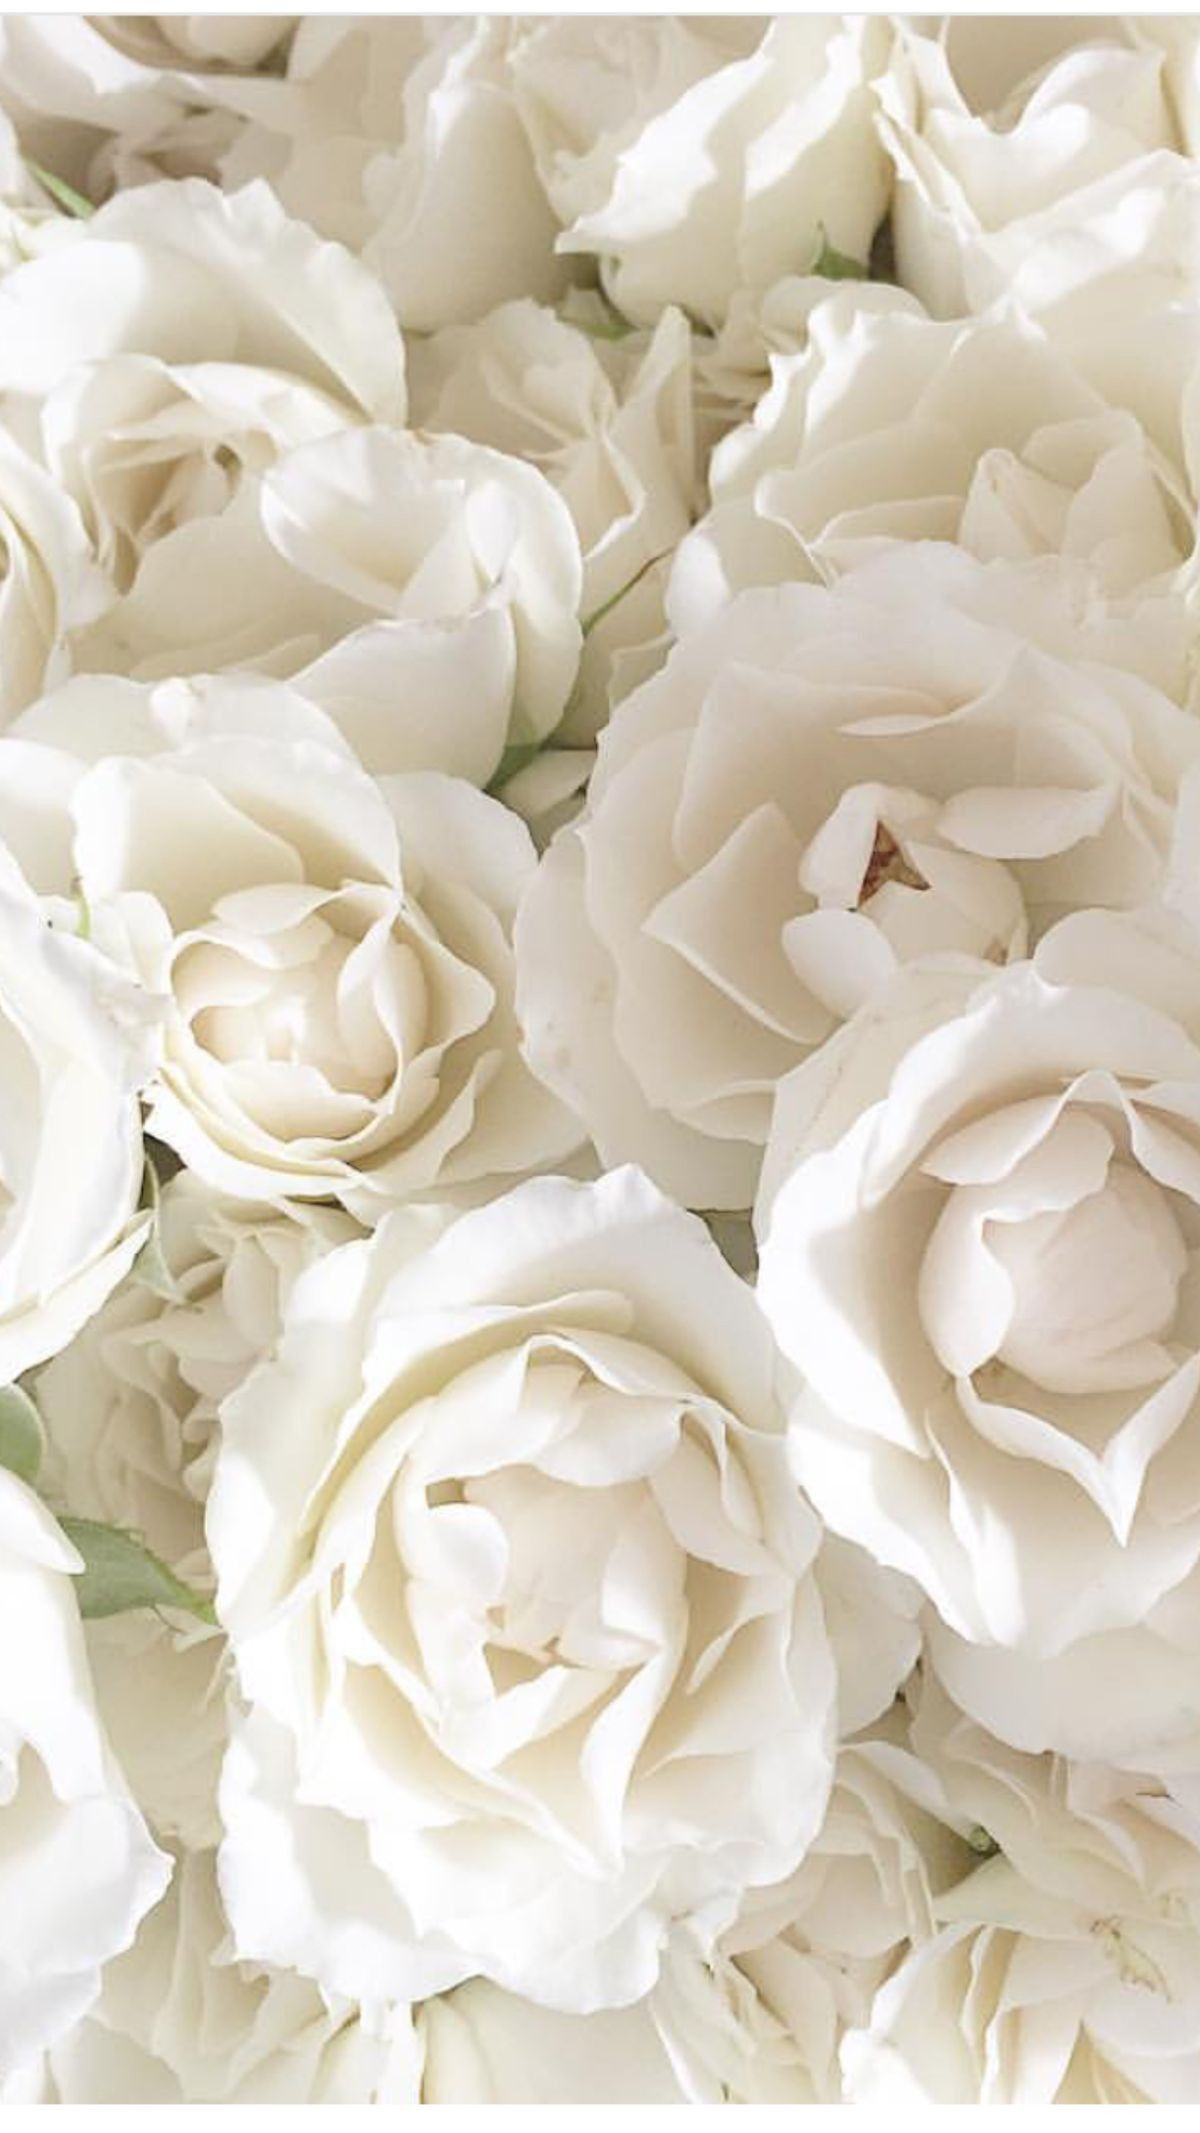 From rose wallpaper aesthetic to beautiful white roses wallpaper photography. Pin by Hatem Elhabashy on flowers | Flower aesthetic ...